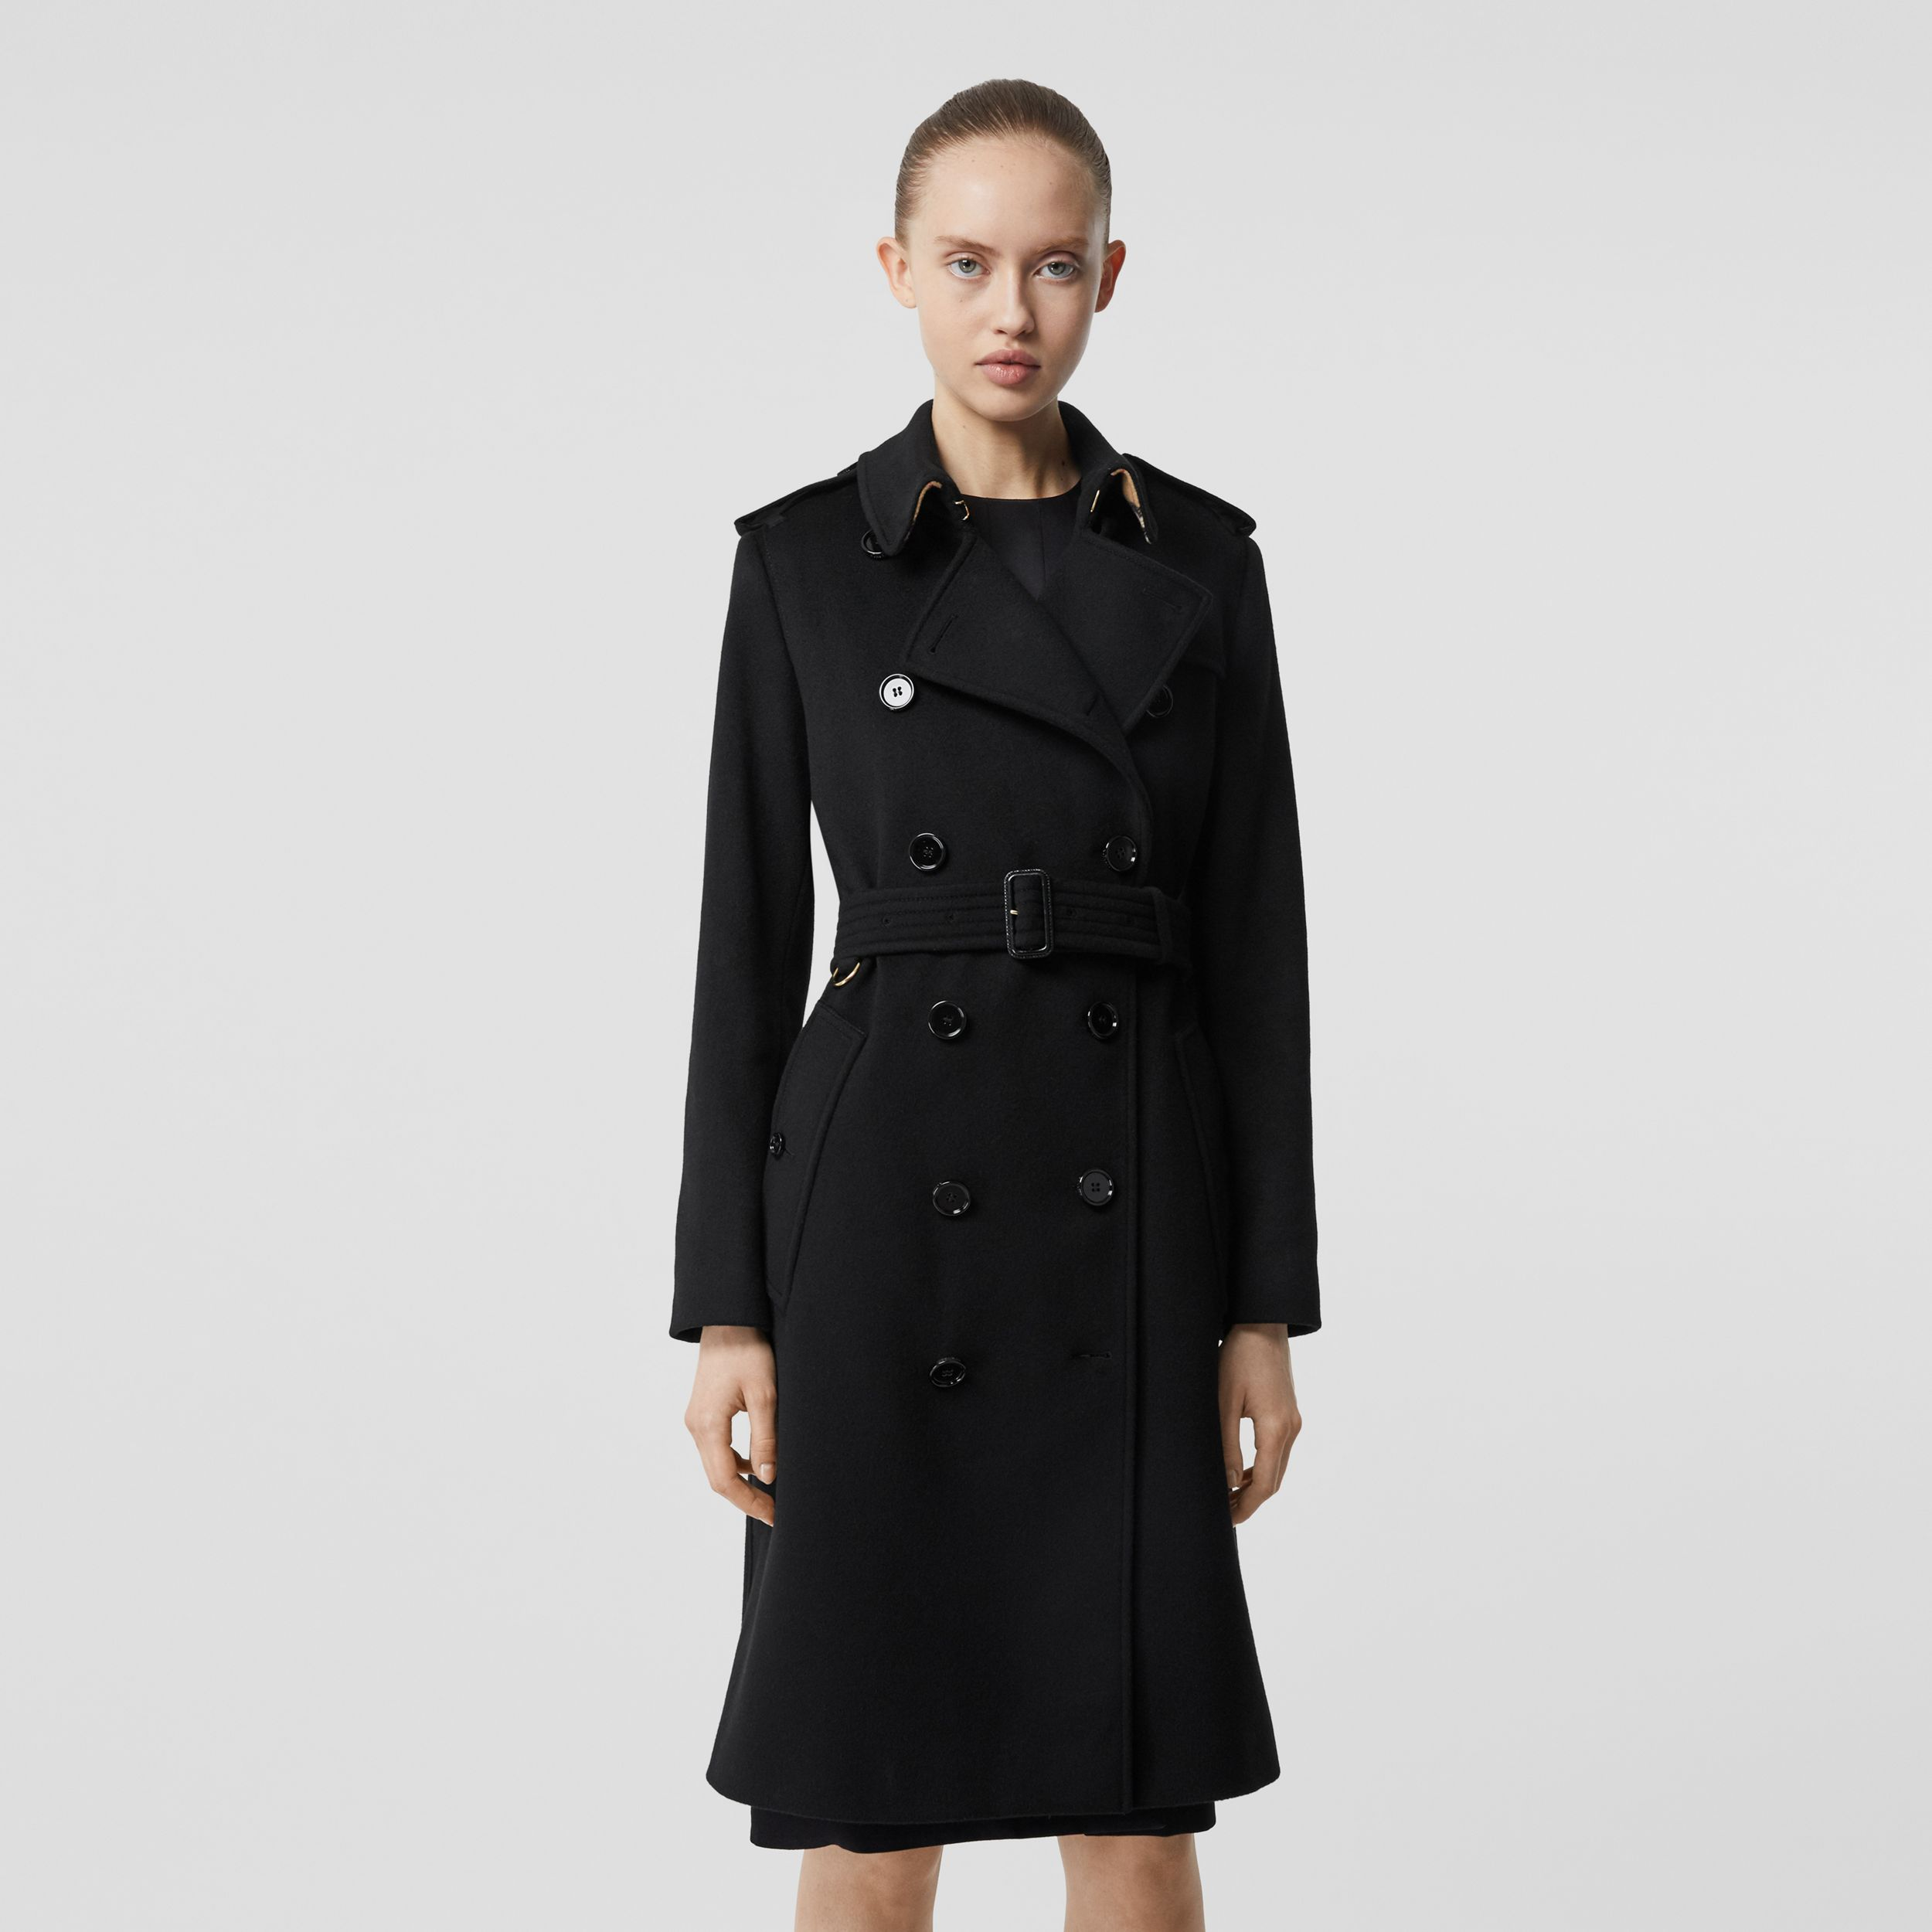 Cashmere Trench Coat in Black - Women | Burberry - 1